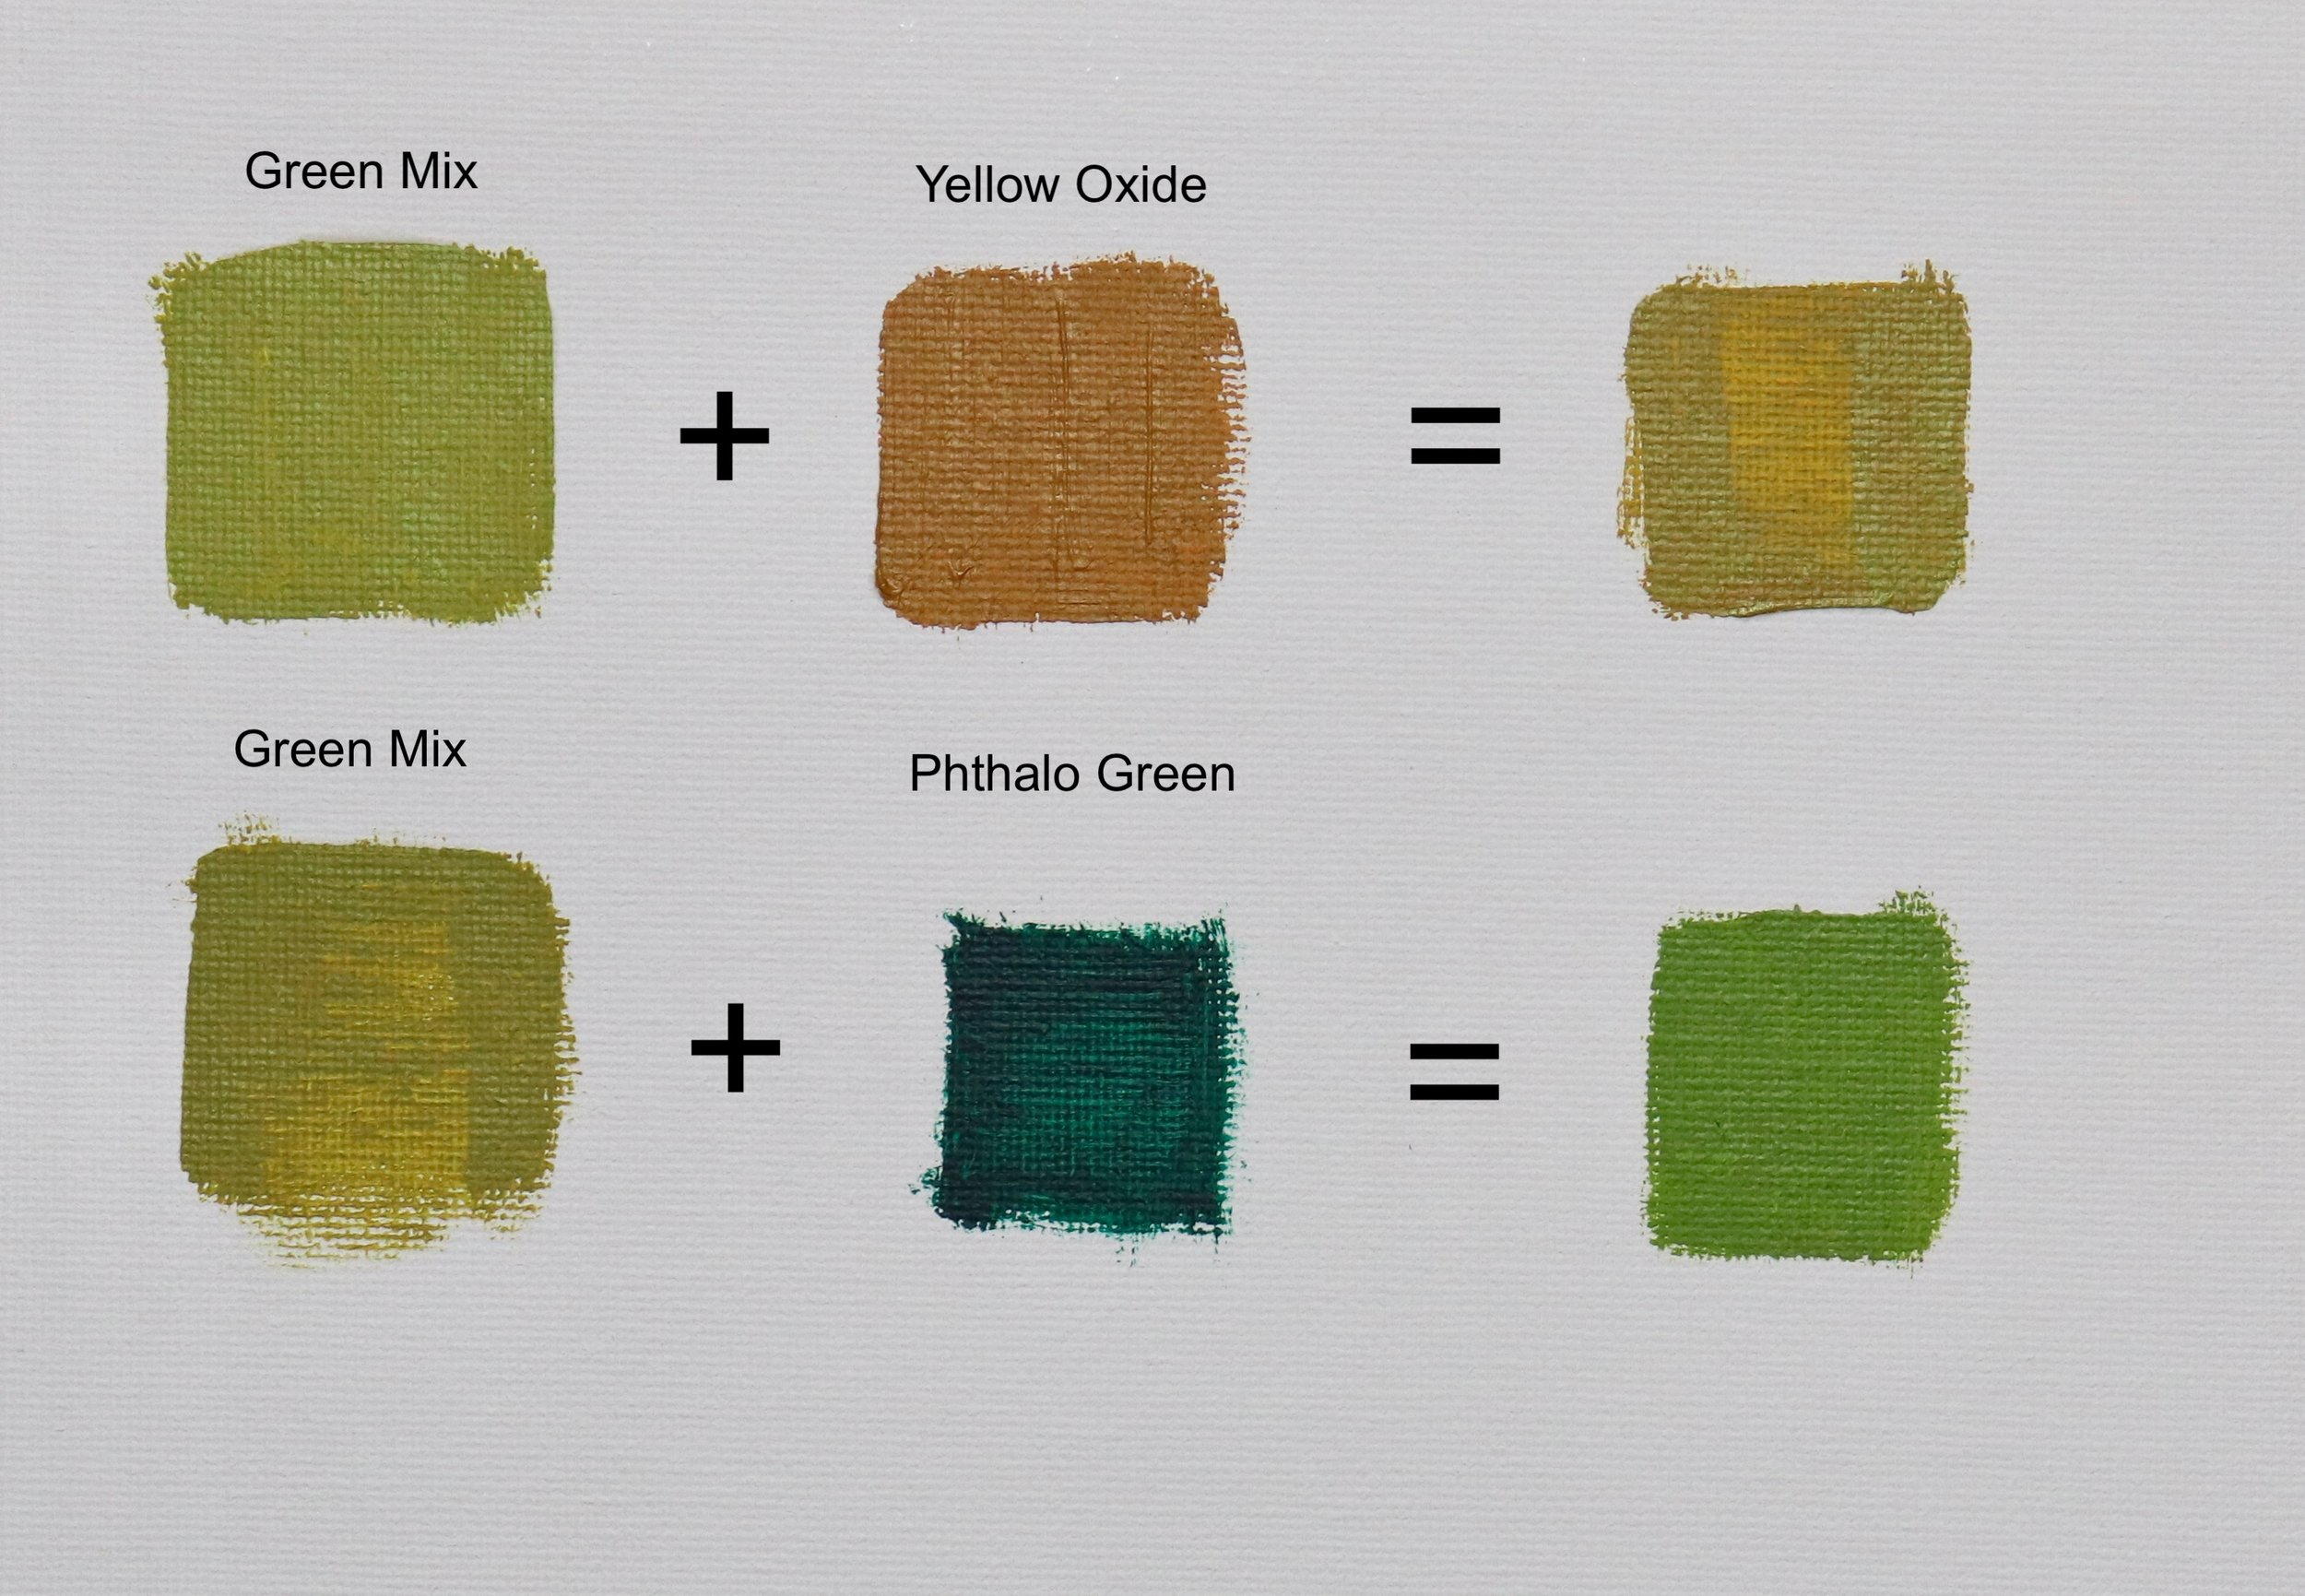 Here are two examples of adding additional colours to an existing grass green mix. Adding yellow oxide warms and softens the green. Adding phthalo green increases the saturation to make a rich green.